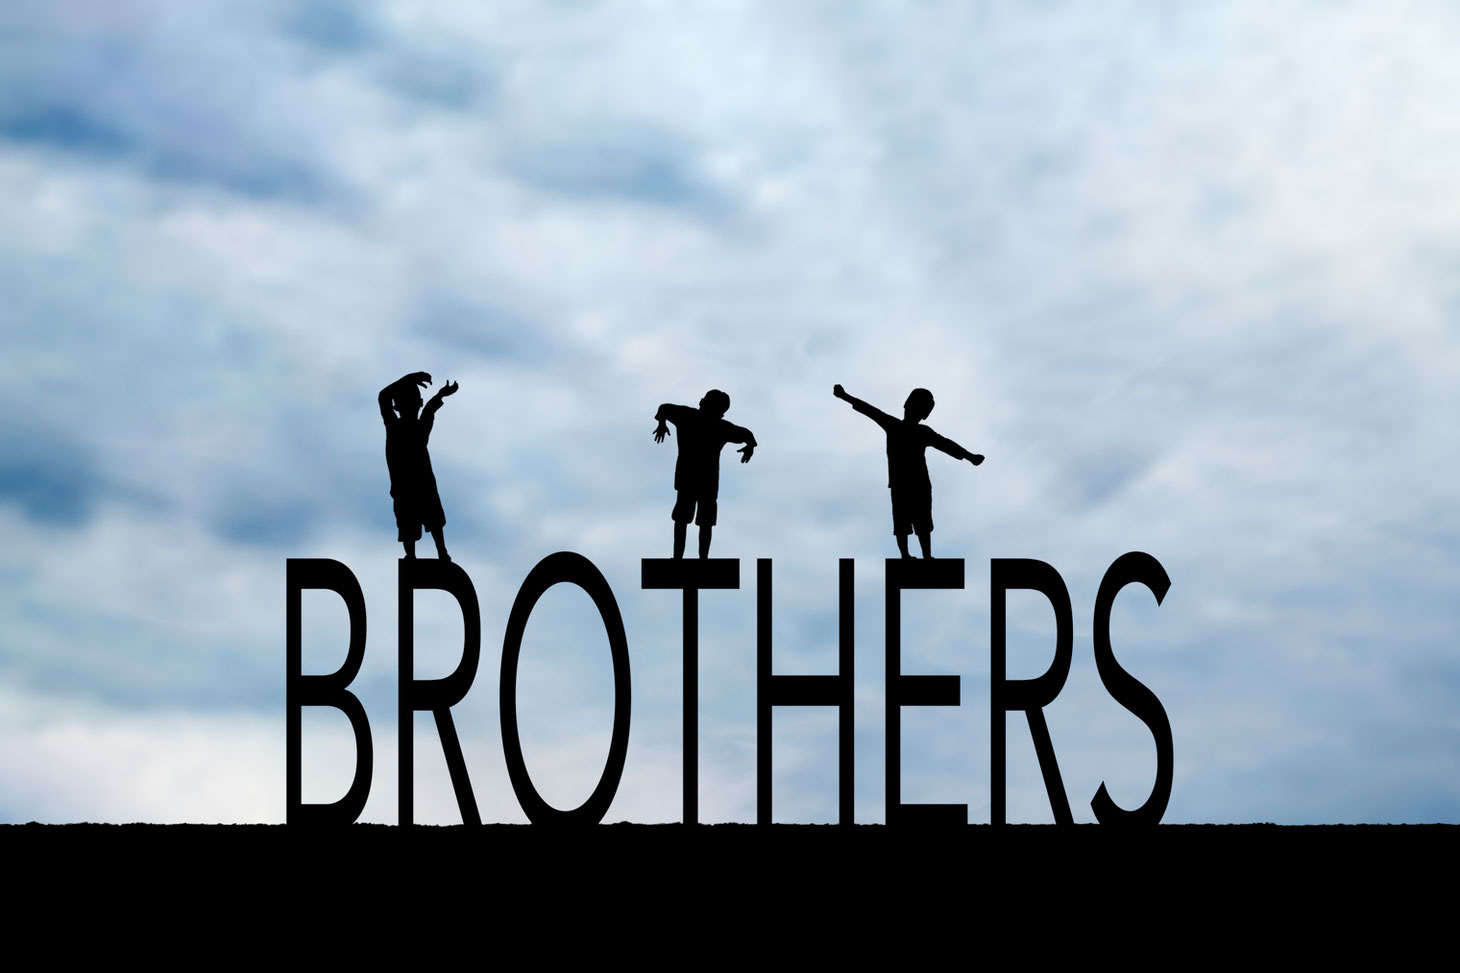 silhouettes of 3 boys on the letters BROTHERS. Sky is blue.